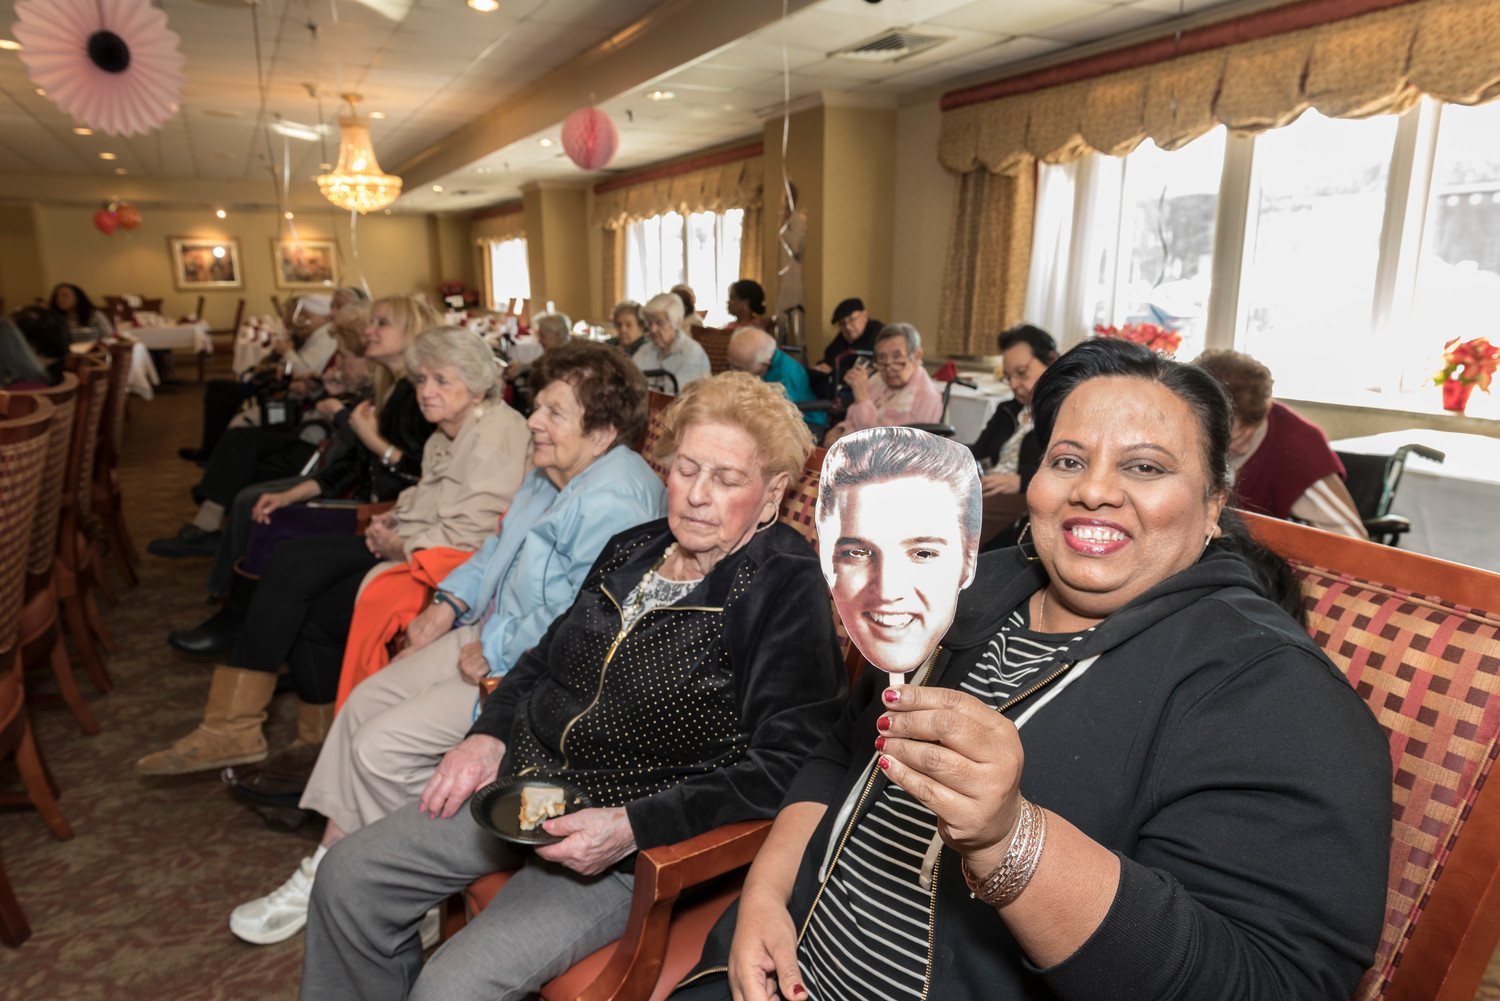 Kamala Singh shows off her Elvis mask, which were distributed to concertgoers.